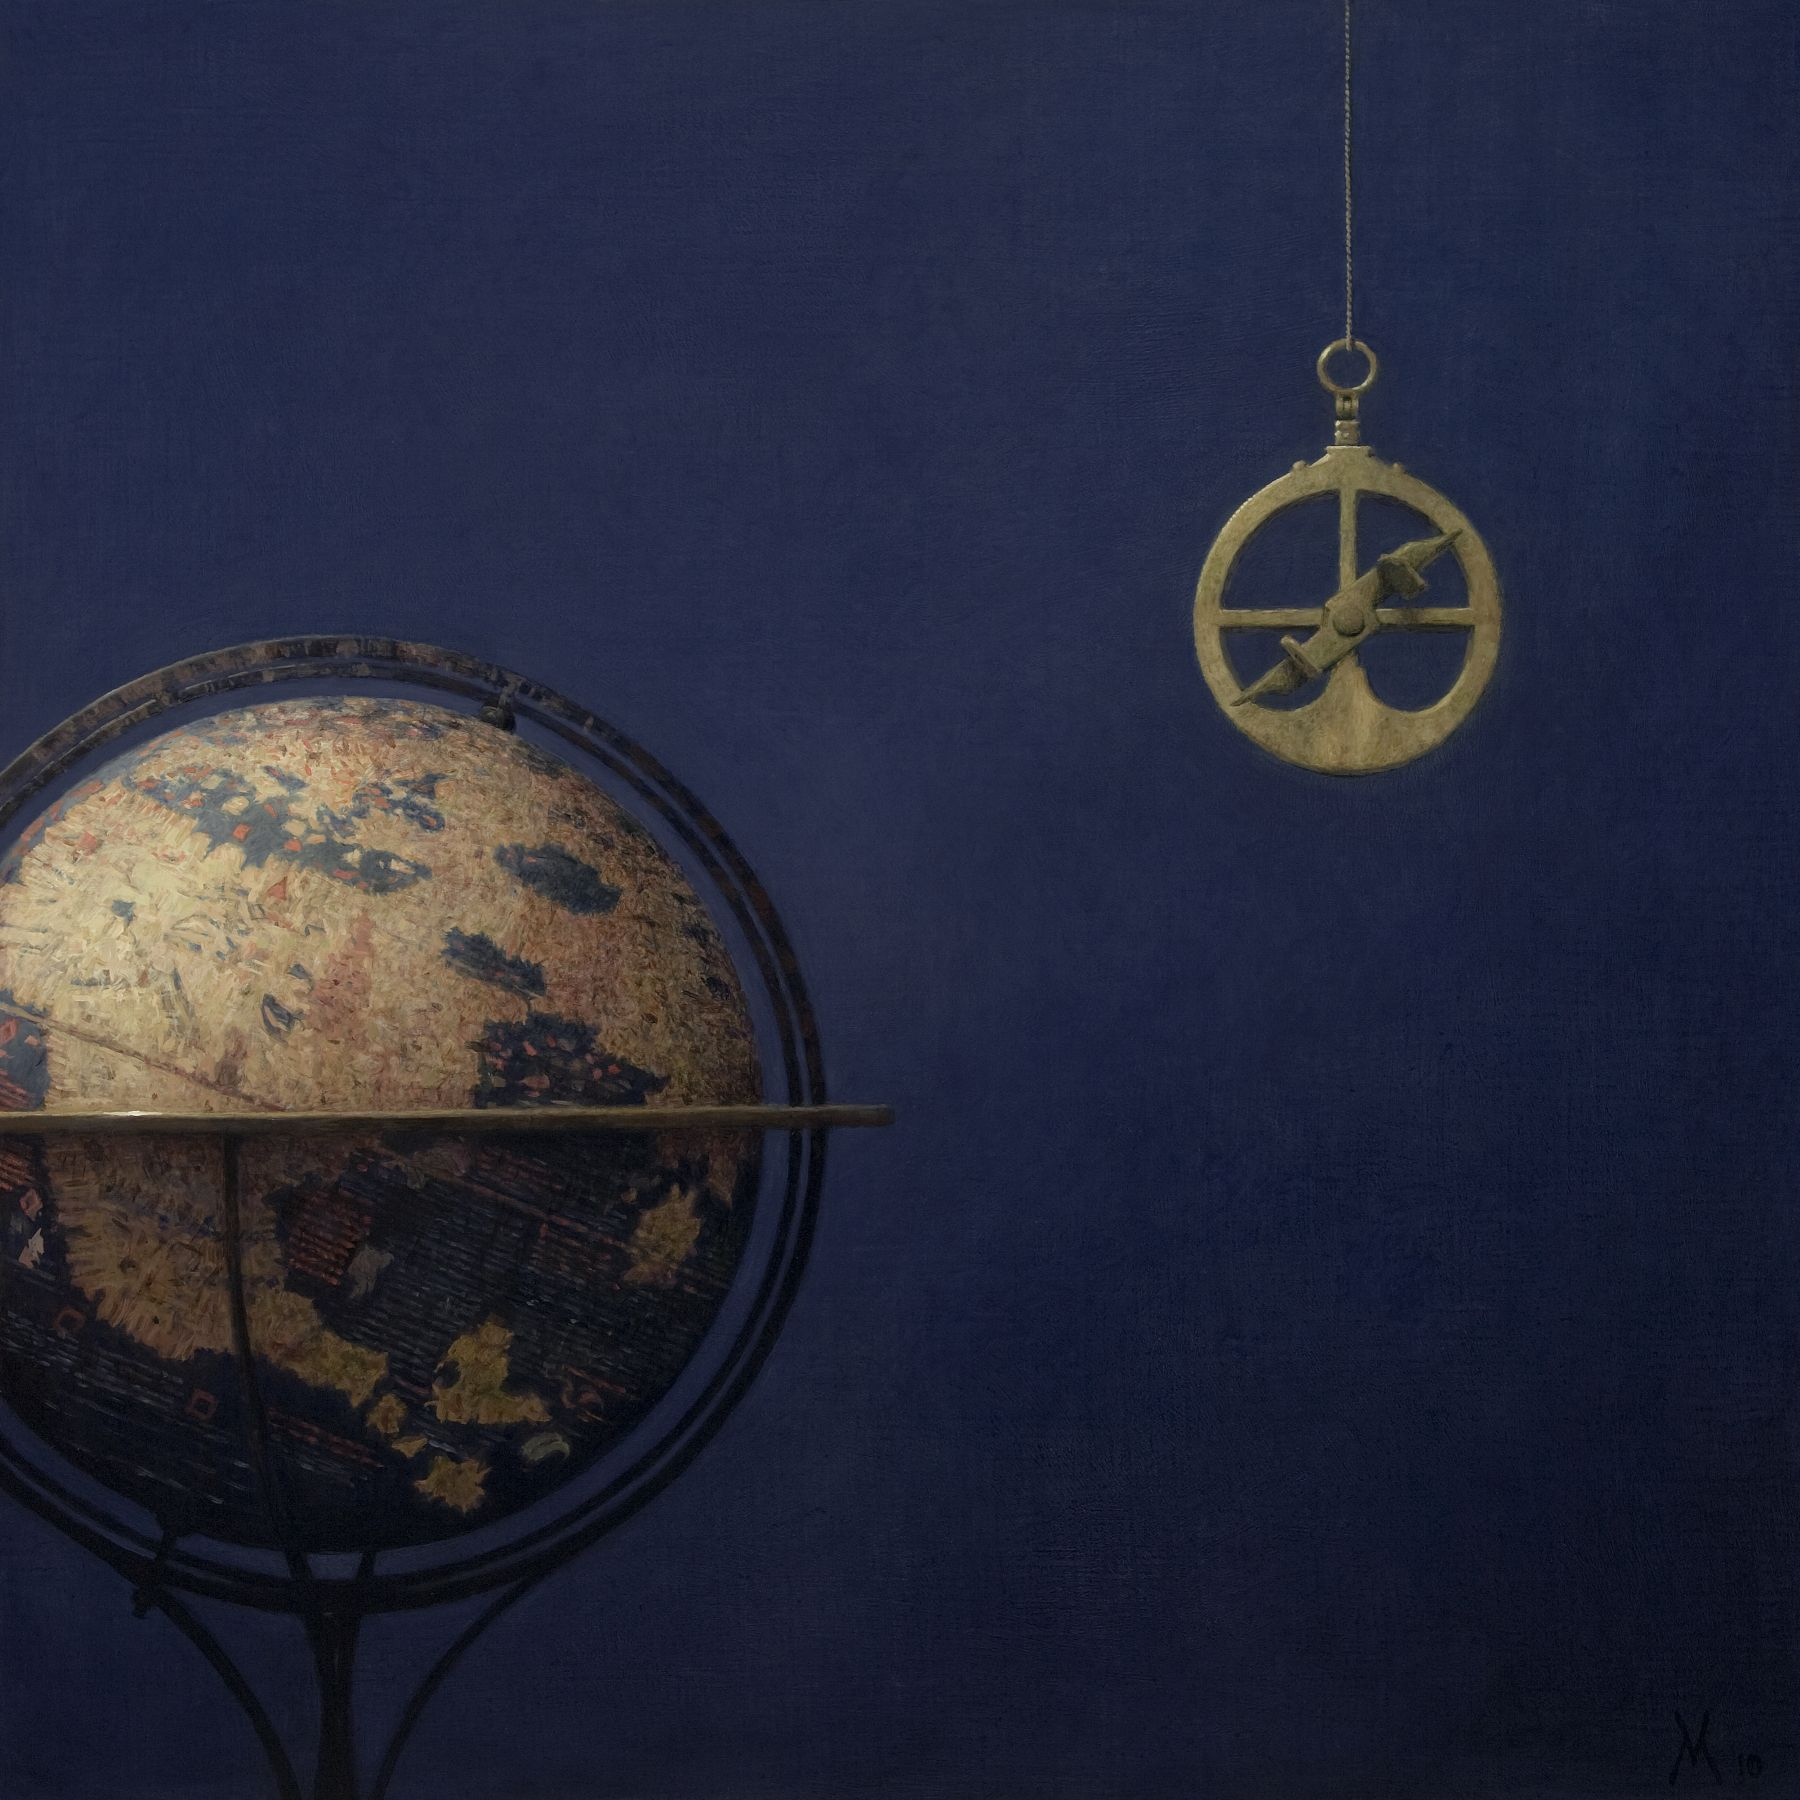 guillermo munoz vera, The Erdapfel of Behaim and Astrolabe, 2010, oil on canvas on panel, 35 x 35 inches